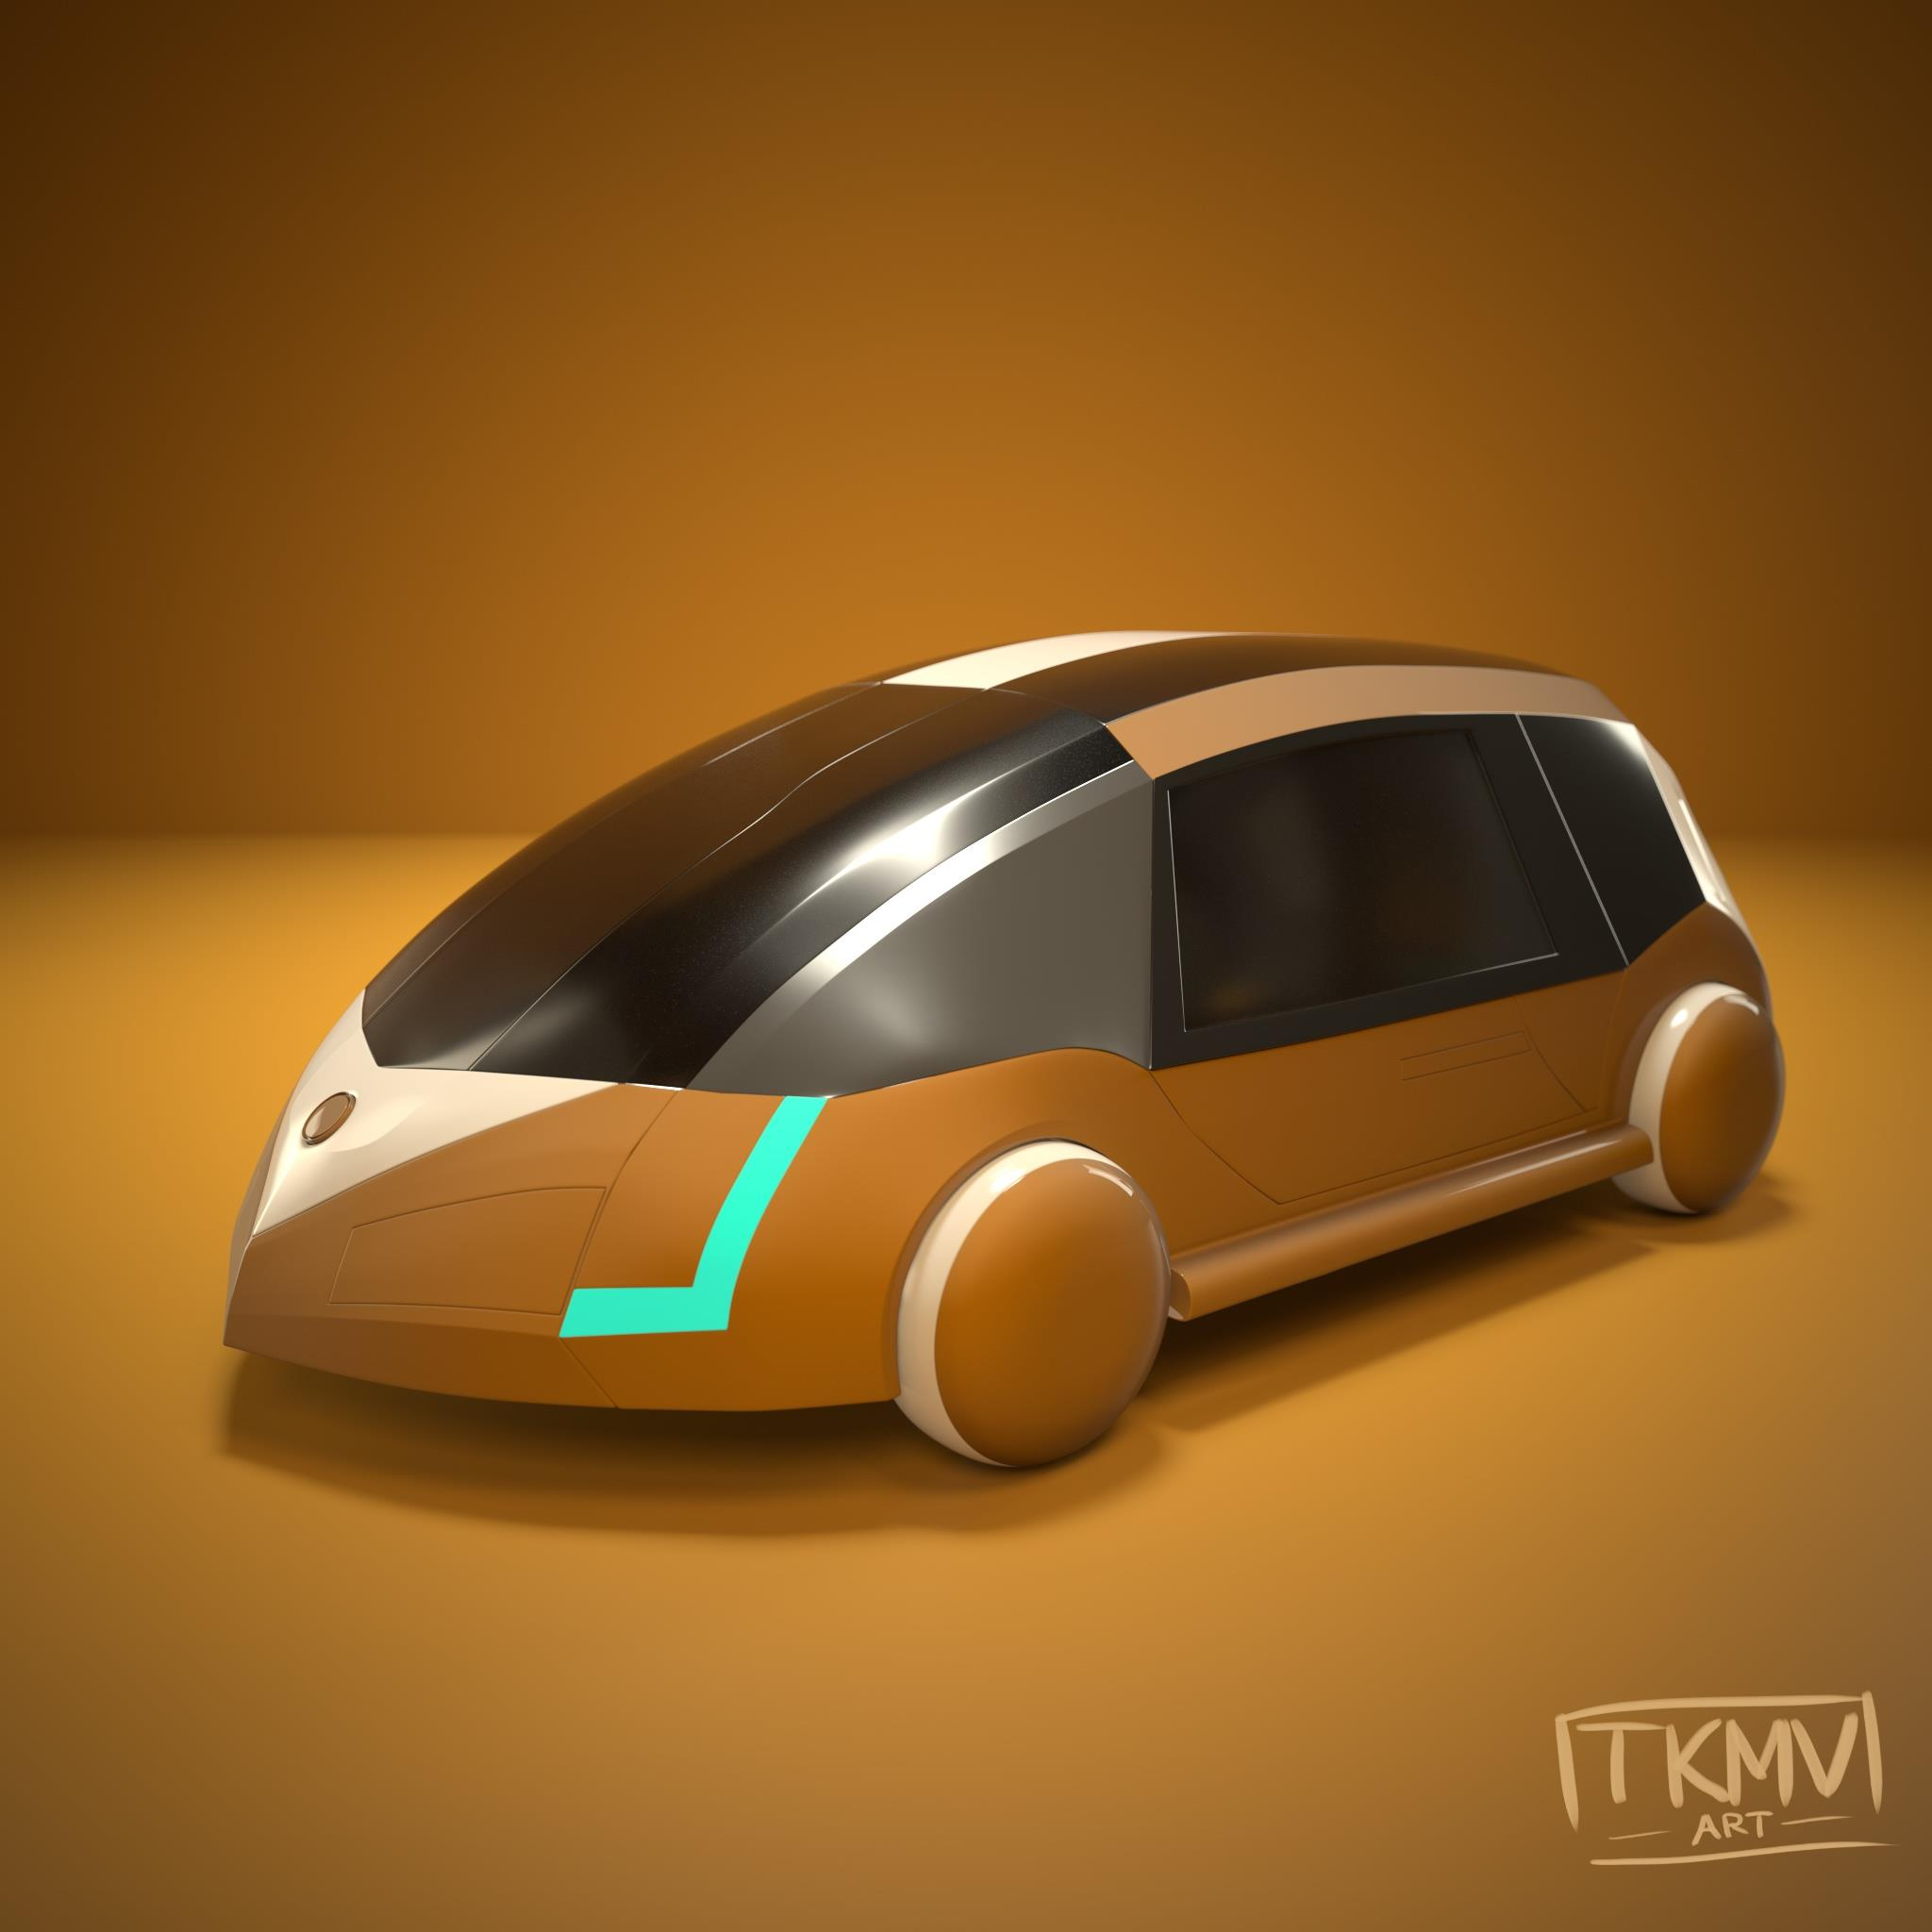 Future Car Design 01